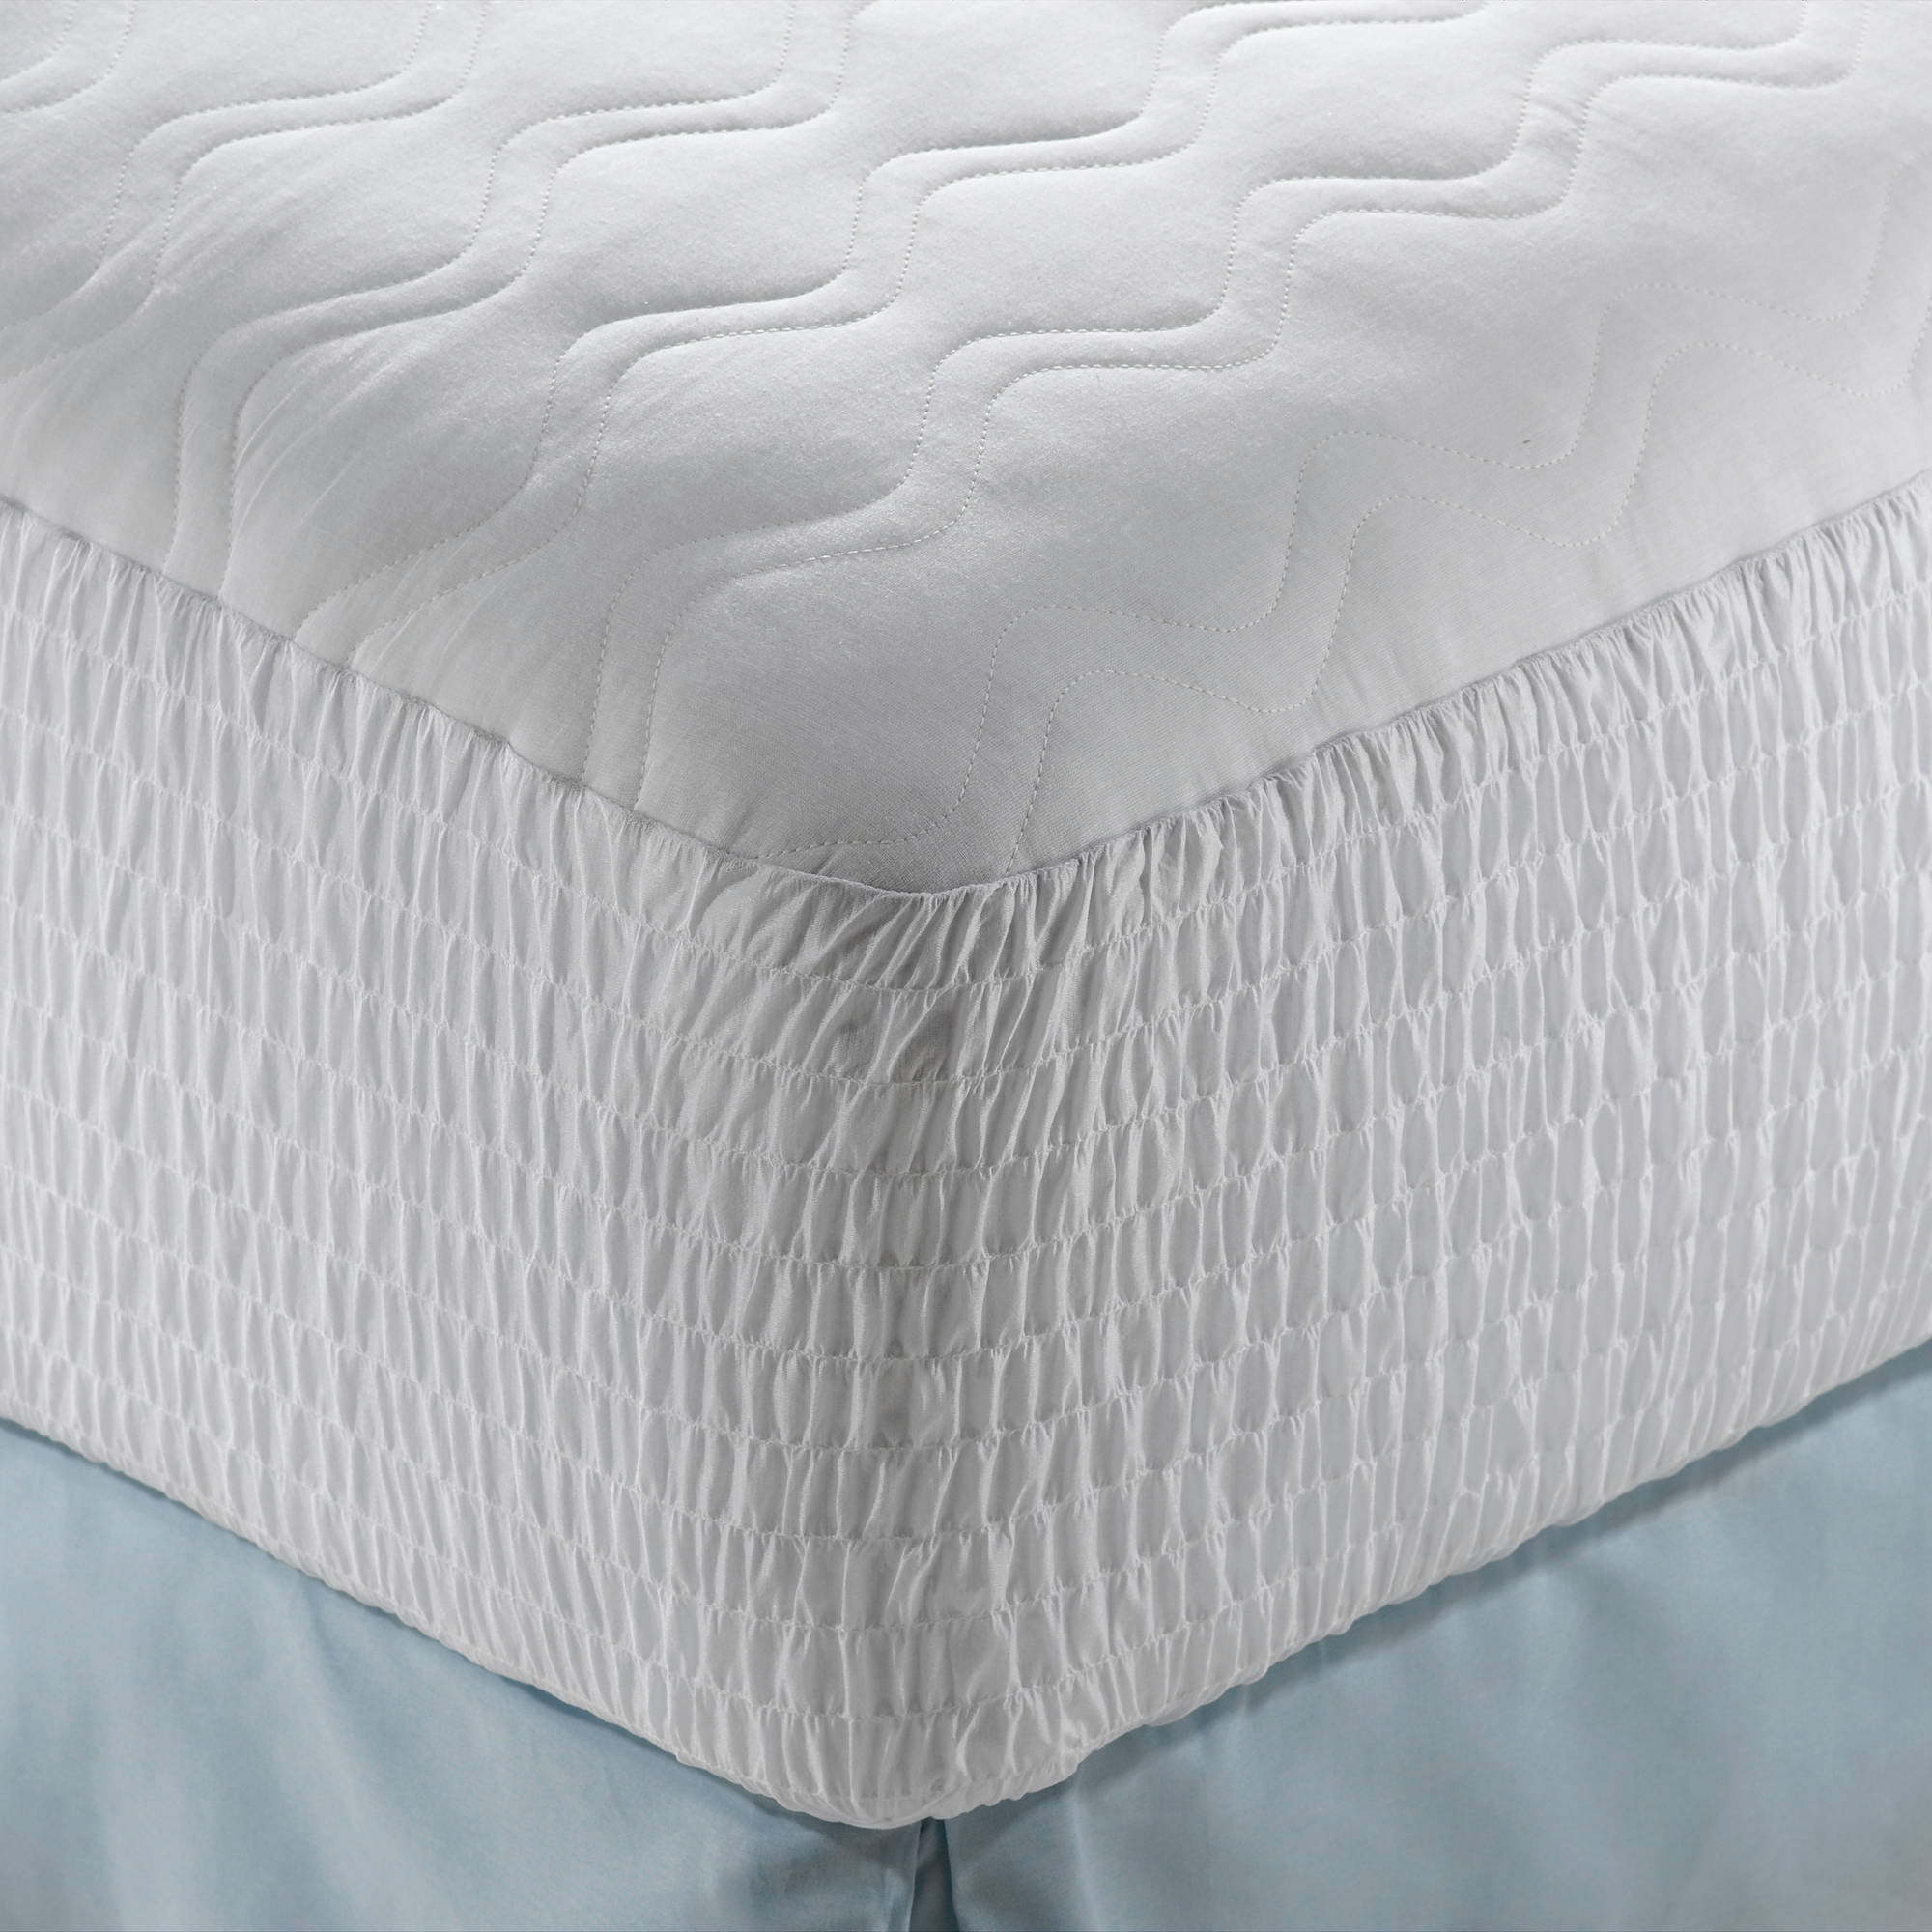 pdx pillow simmons mattress recharge top topper beautyrest reviews mattresses medium wayfair